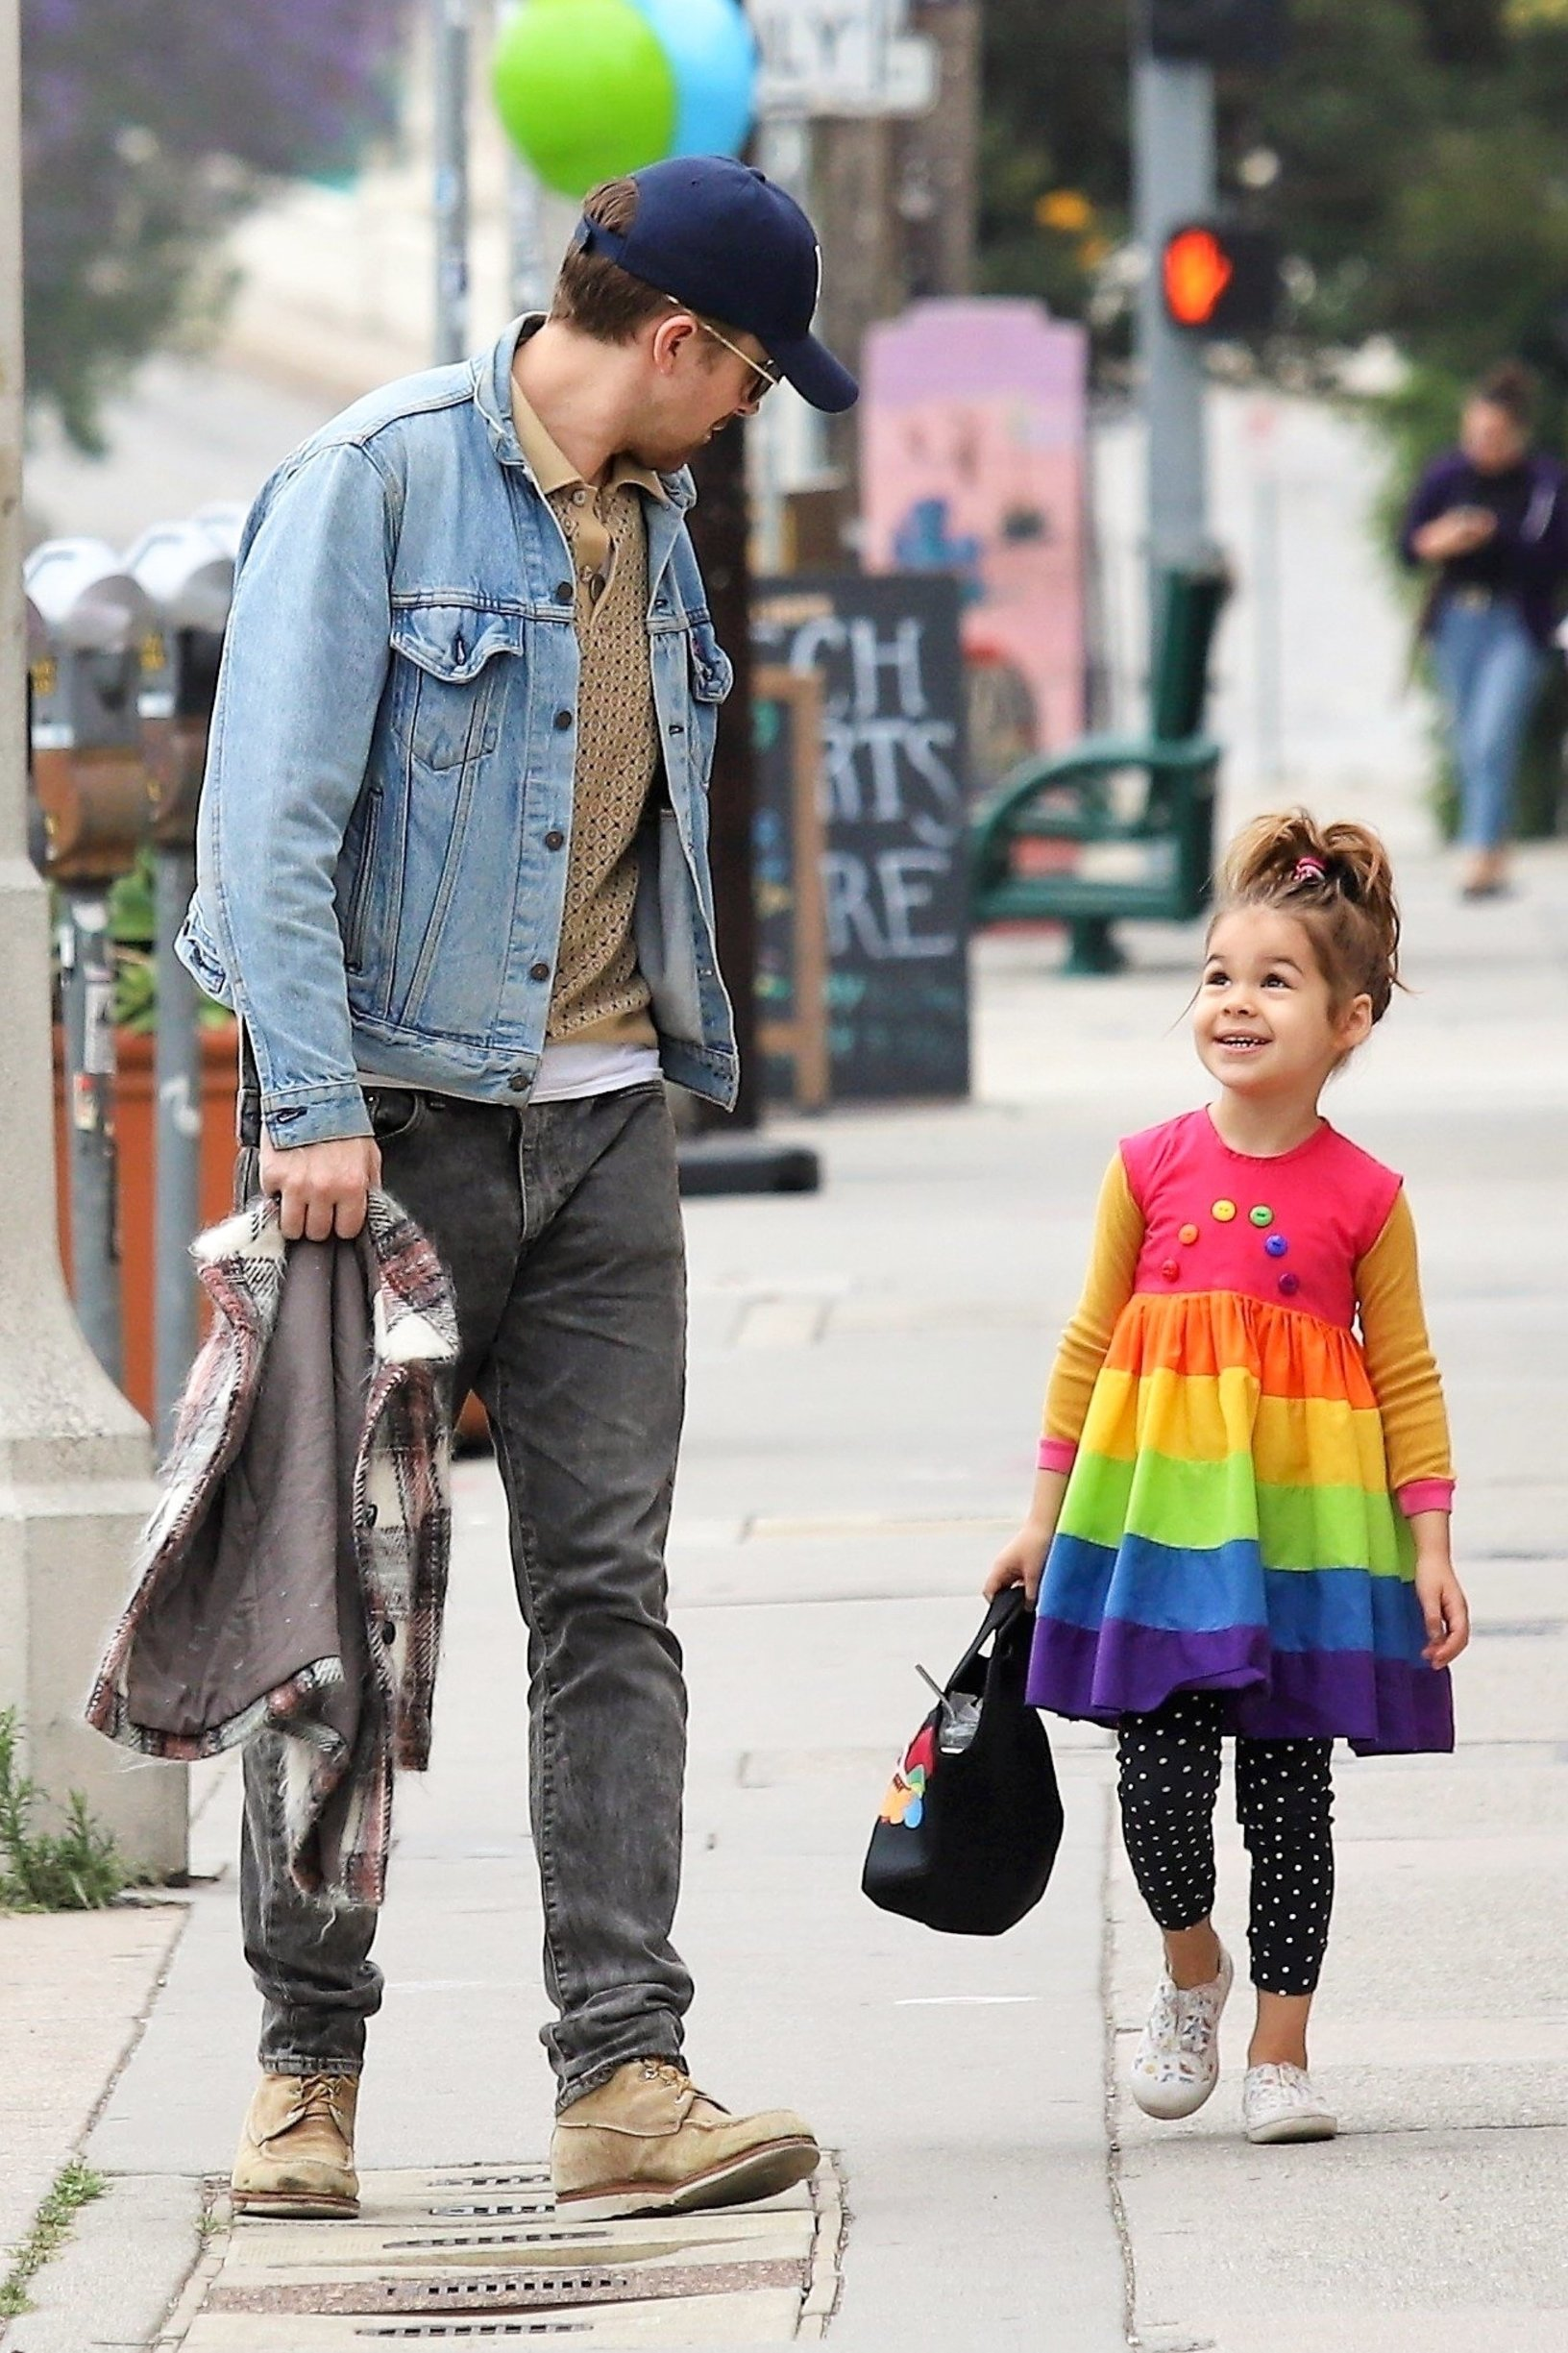 Los Angeles, CA  - *EXCLUSIVE*  - Actor Ryan Gosling takes a stroll with his little one Esmeralda Gosling. The little bundle of sunshine dons a cute rainbow striped dress with polka dotted pants. Ryan keeps things casual in a light blue denim jacket and faded black pants.  Pictured: Ryan Gosling    *UK Clients - Pictures Containing Children Please Pixelate Face Prior To Publication*, Image: 432921277, License: Rights-managed, Restrictions: , Model Release: no, Credit line: Profimedia, Backgrid USA